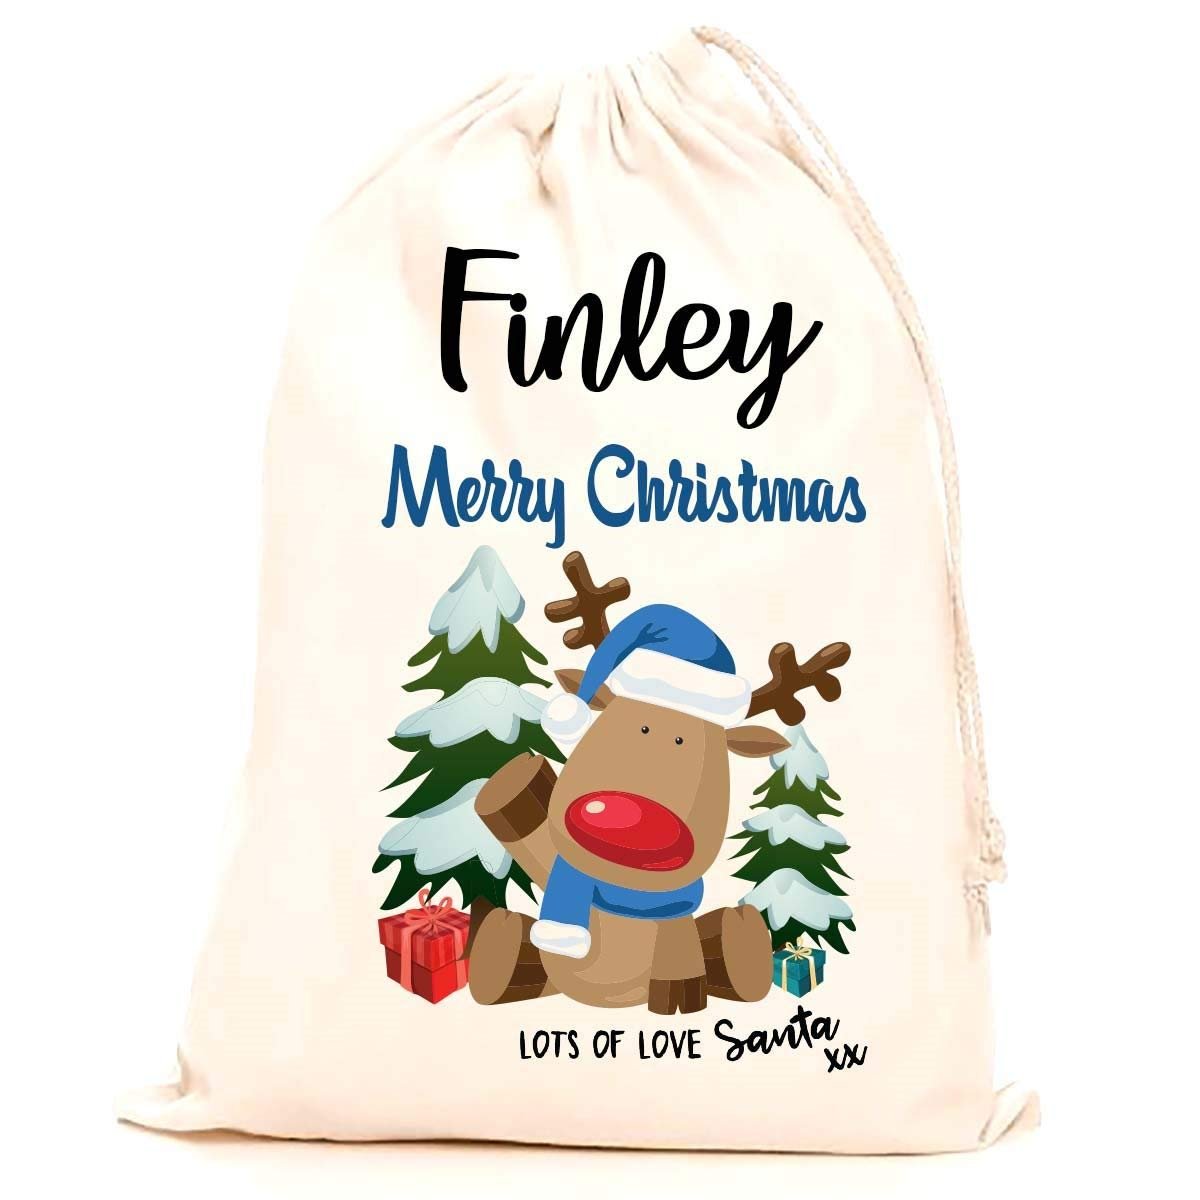 Treat Me Suite Finley personalised name Christmas santa sack, stocking printed with a blue reindeer (75x50cm) 100% Cotton Large. Children, Kids, making it the perfect keepsake xmas gift/present. CS Printing Limited